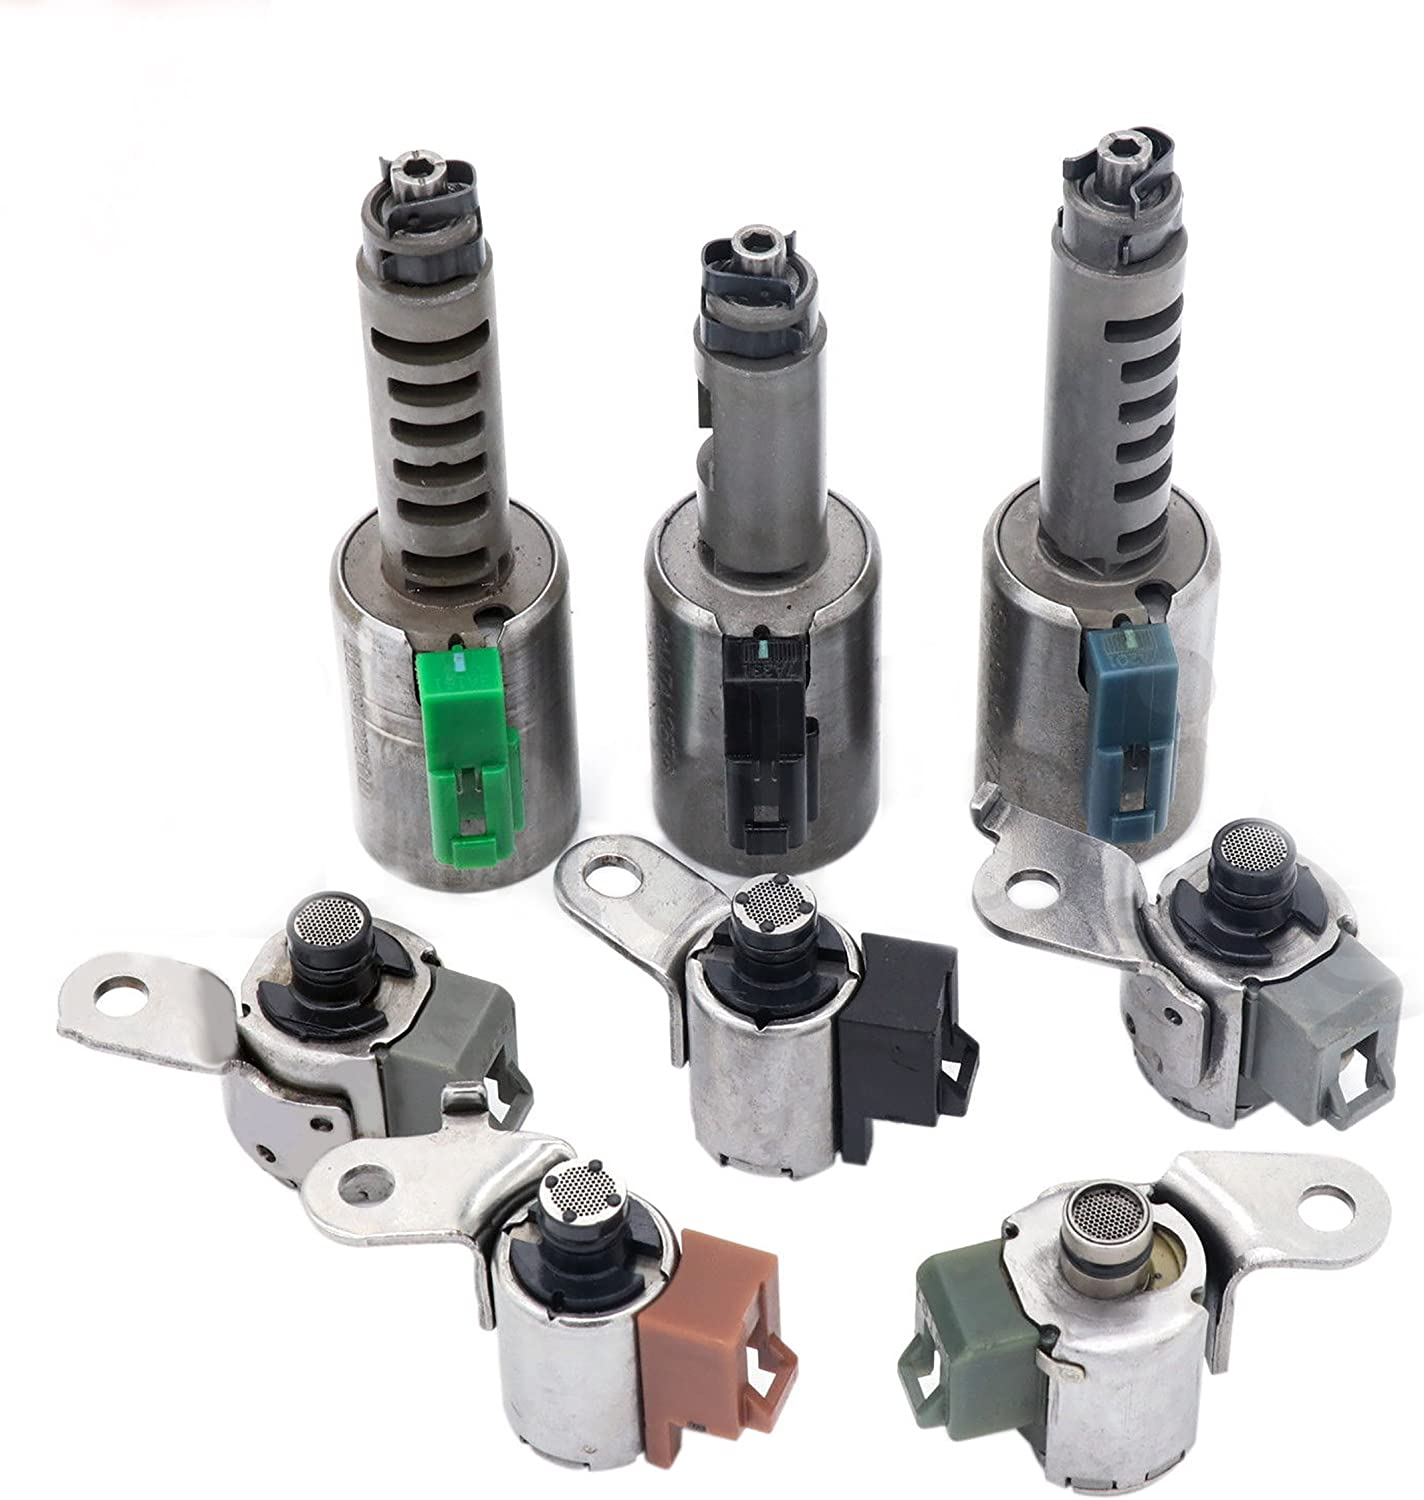 AW55-50SN AW55-51SN AF33-5 AW235 RE5F22A Solenoids Set Transmission for Volvo Nissan Saab Alfa Chevy 8pcs